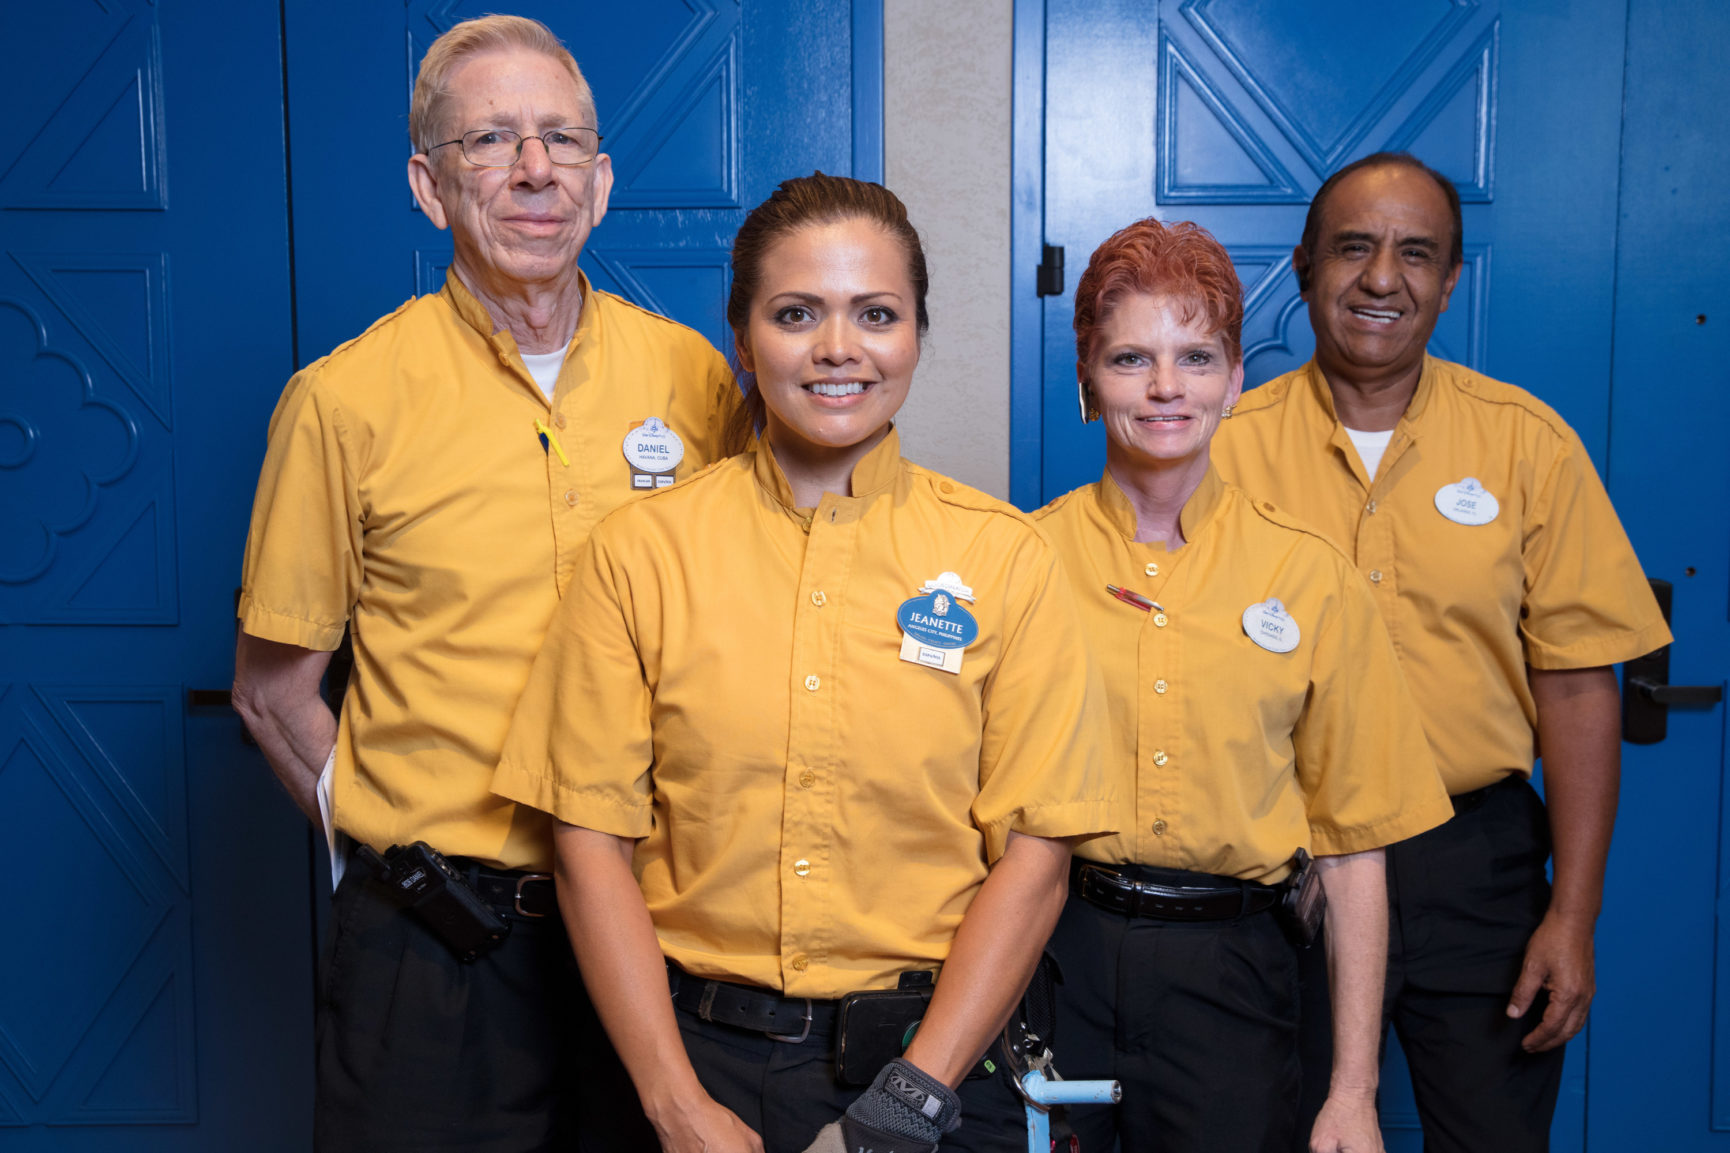 Four UFCW Local 1625 members who work at Disney